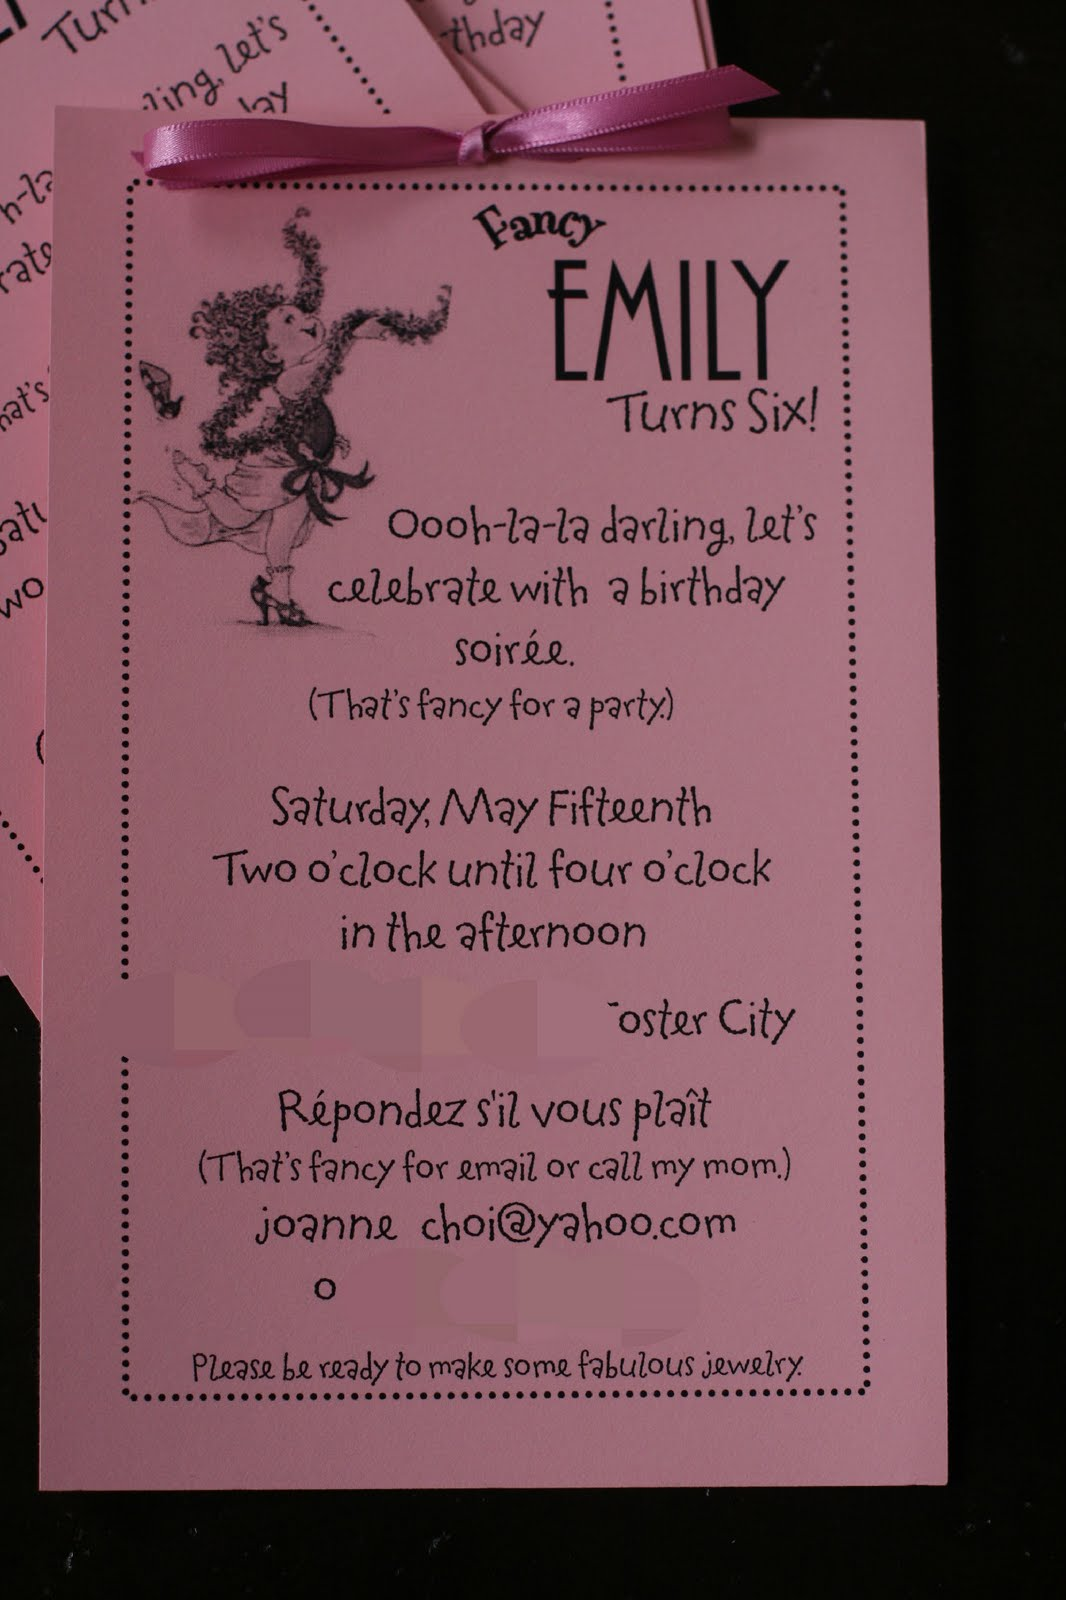 Fancy Nancy 6th Birthday Party: Menu and Party Planning Ideas ...